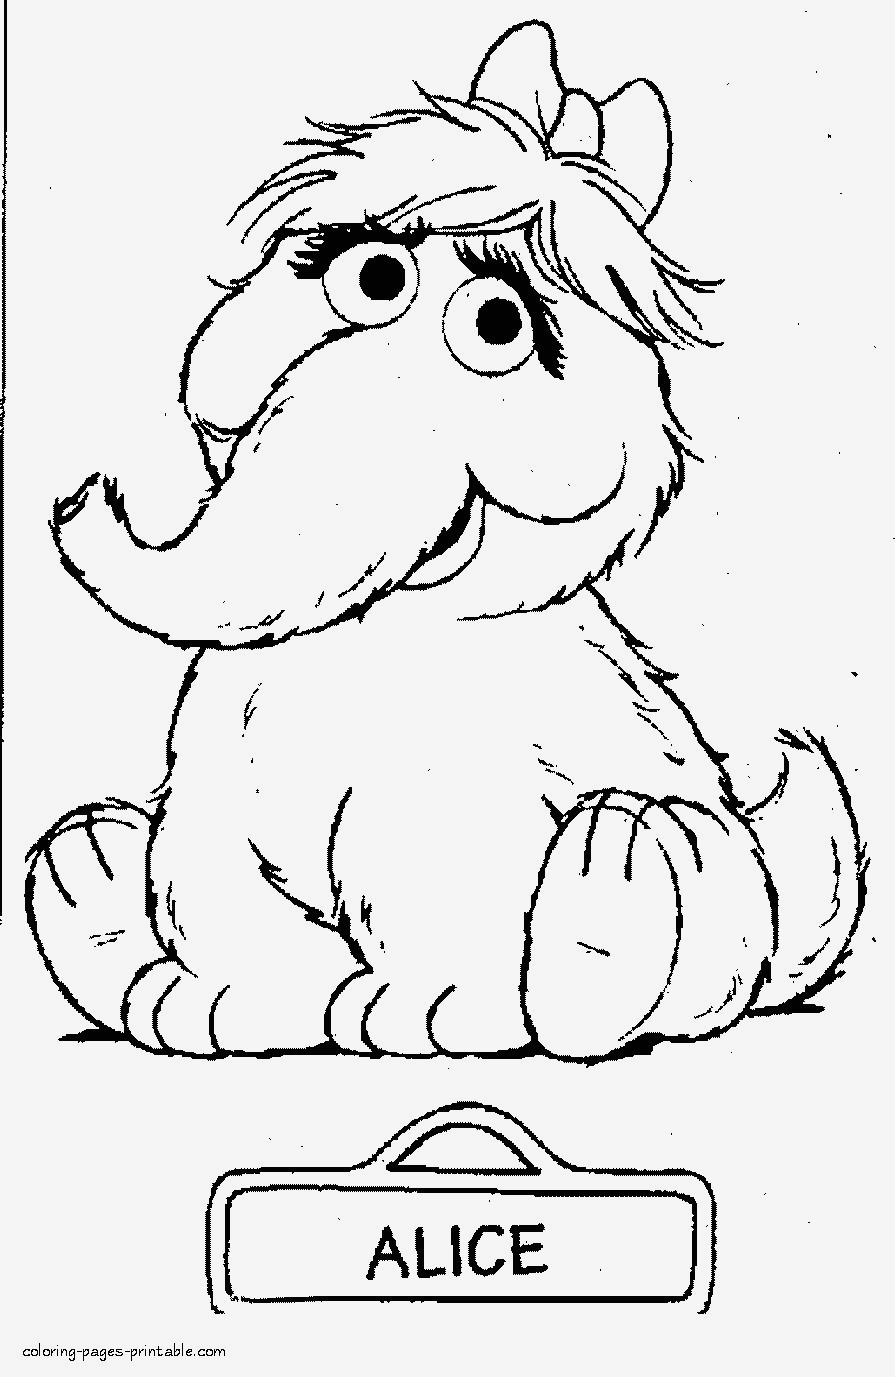 sesame street printable coloring pages Collection-Printable Coloring Book · Sesame Street Coloring Pages Best Easy Sesame Street Coloring Pages New Sesame Street Coloring Sheets 1-h